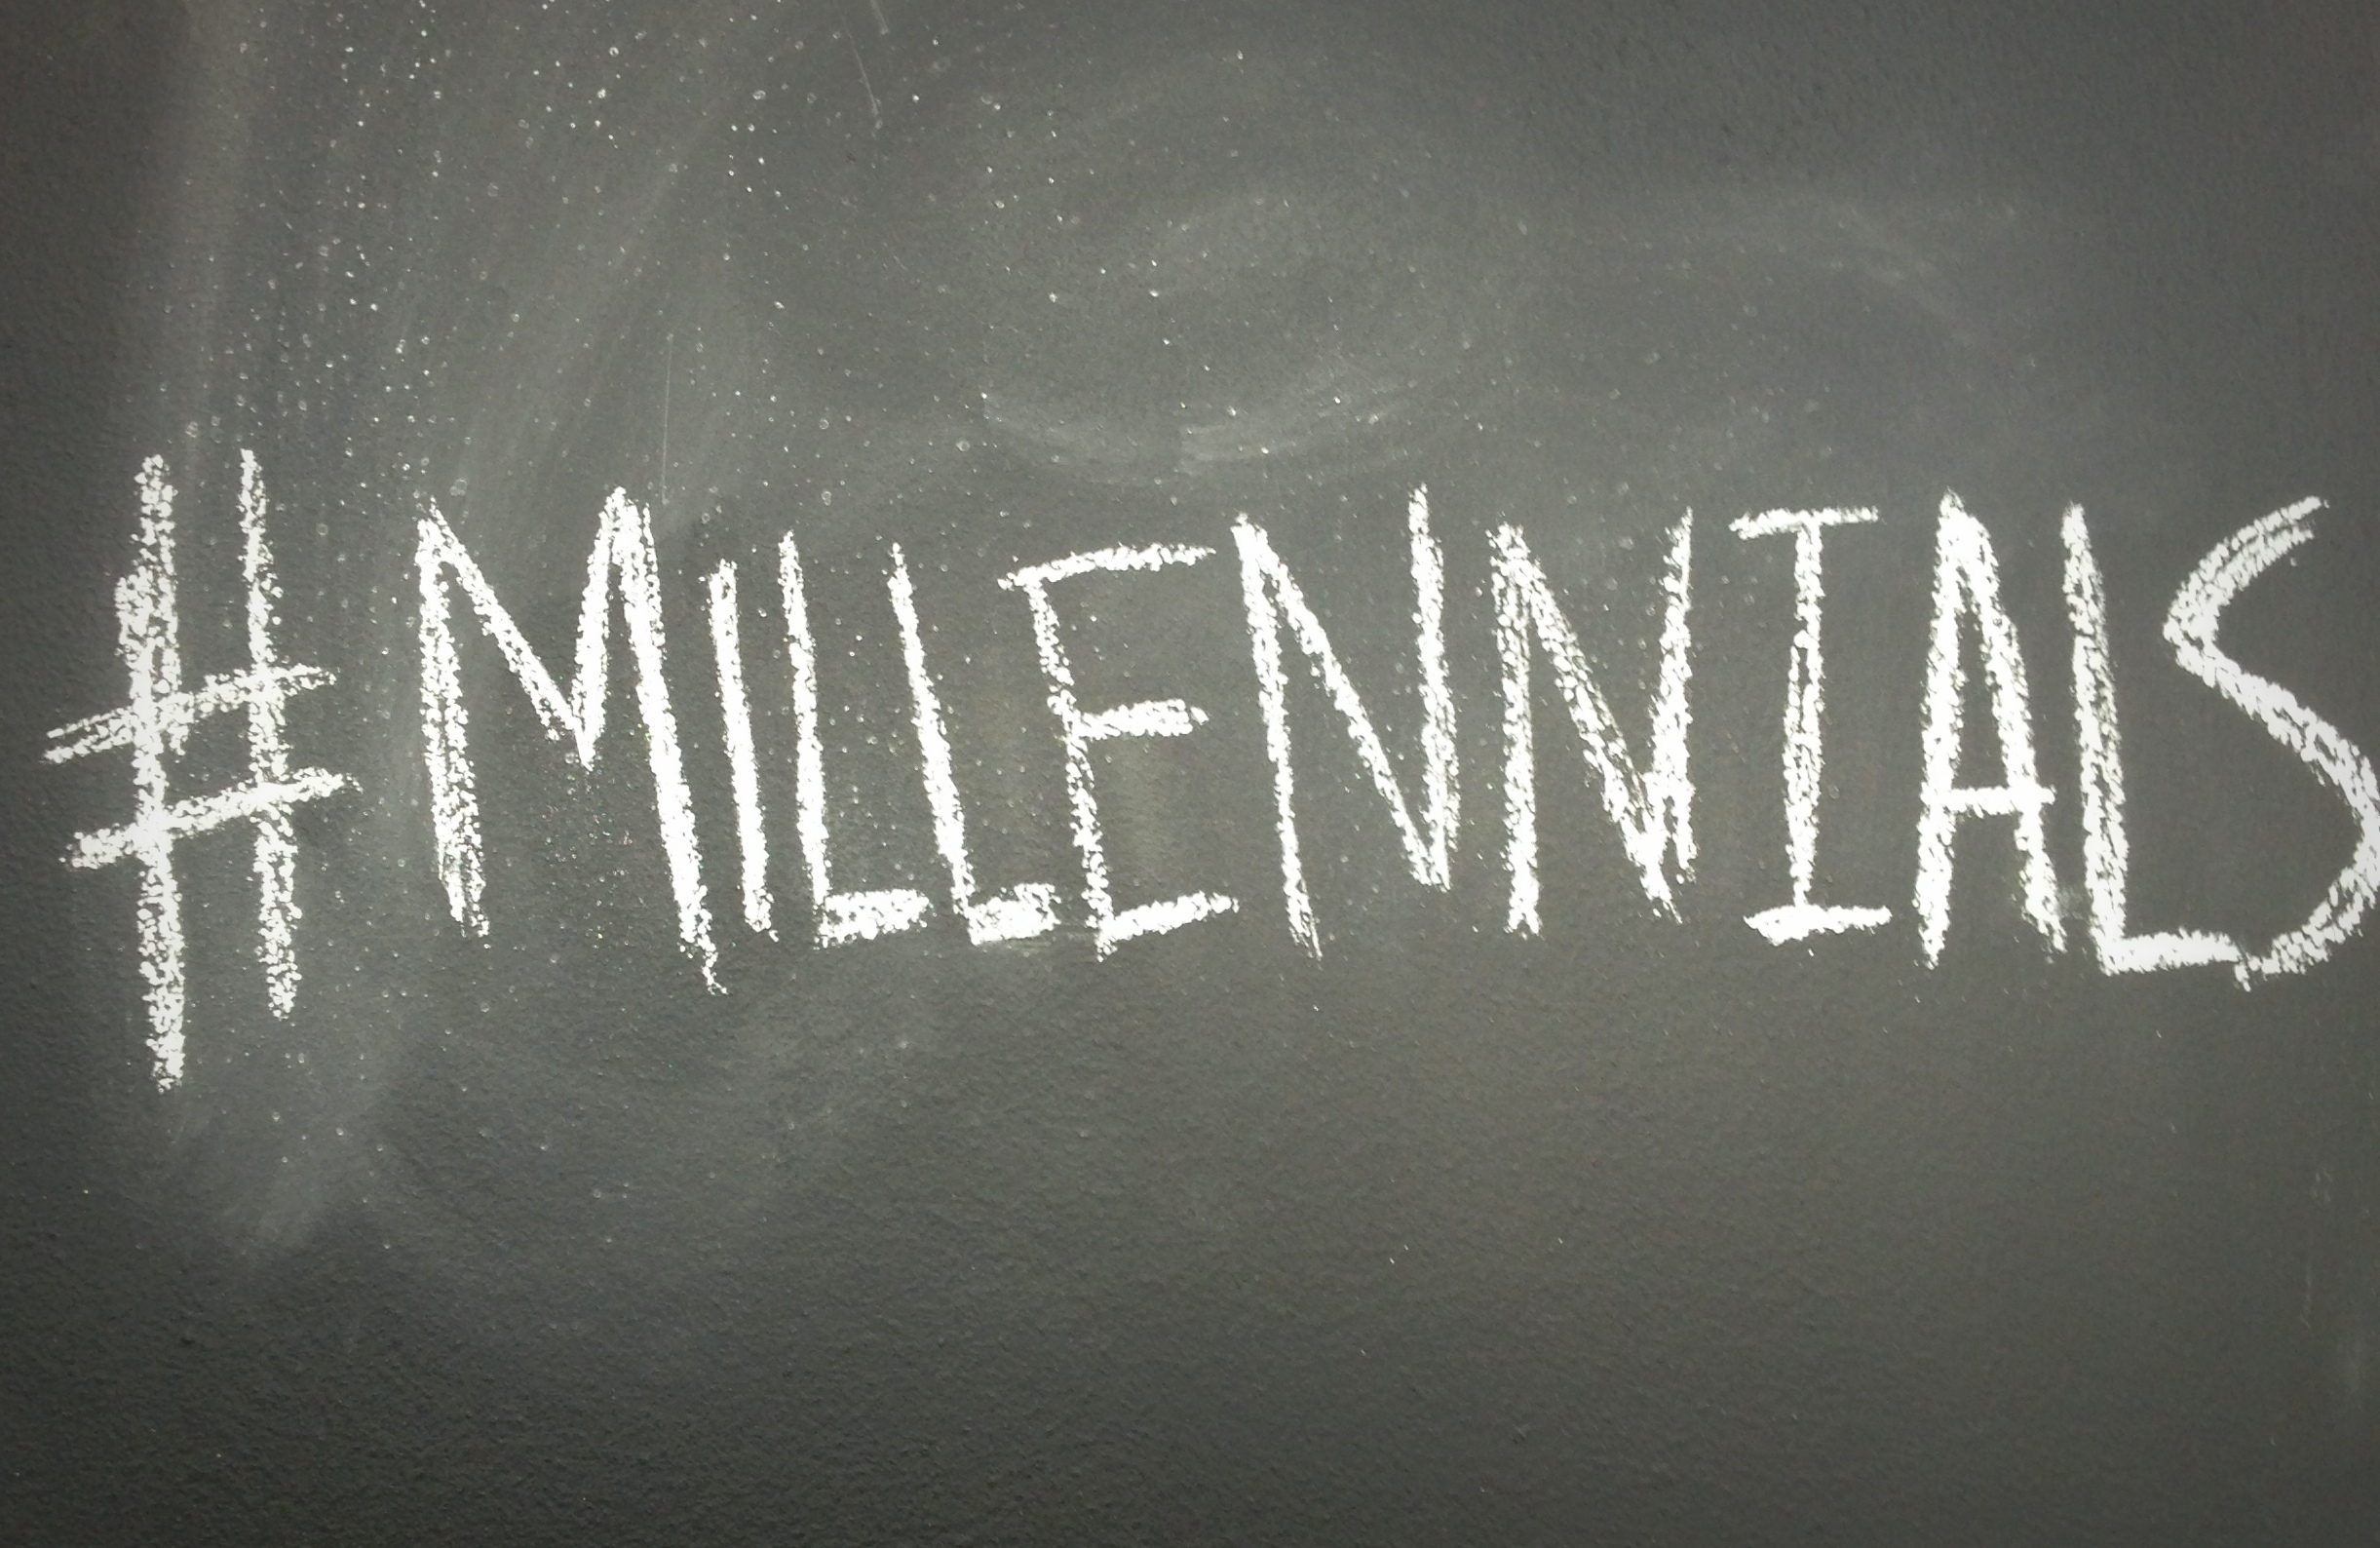 generation me essay millennials essay vc voices first time in a  millennials essay vc voices